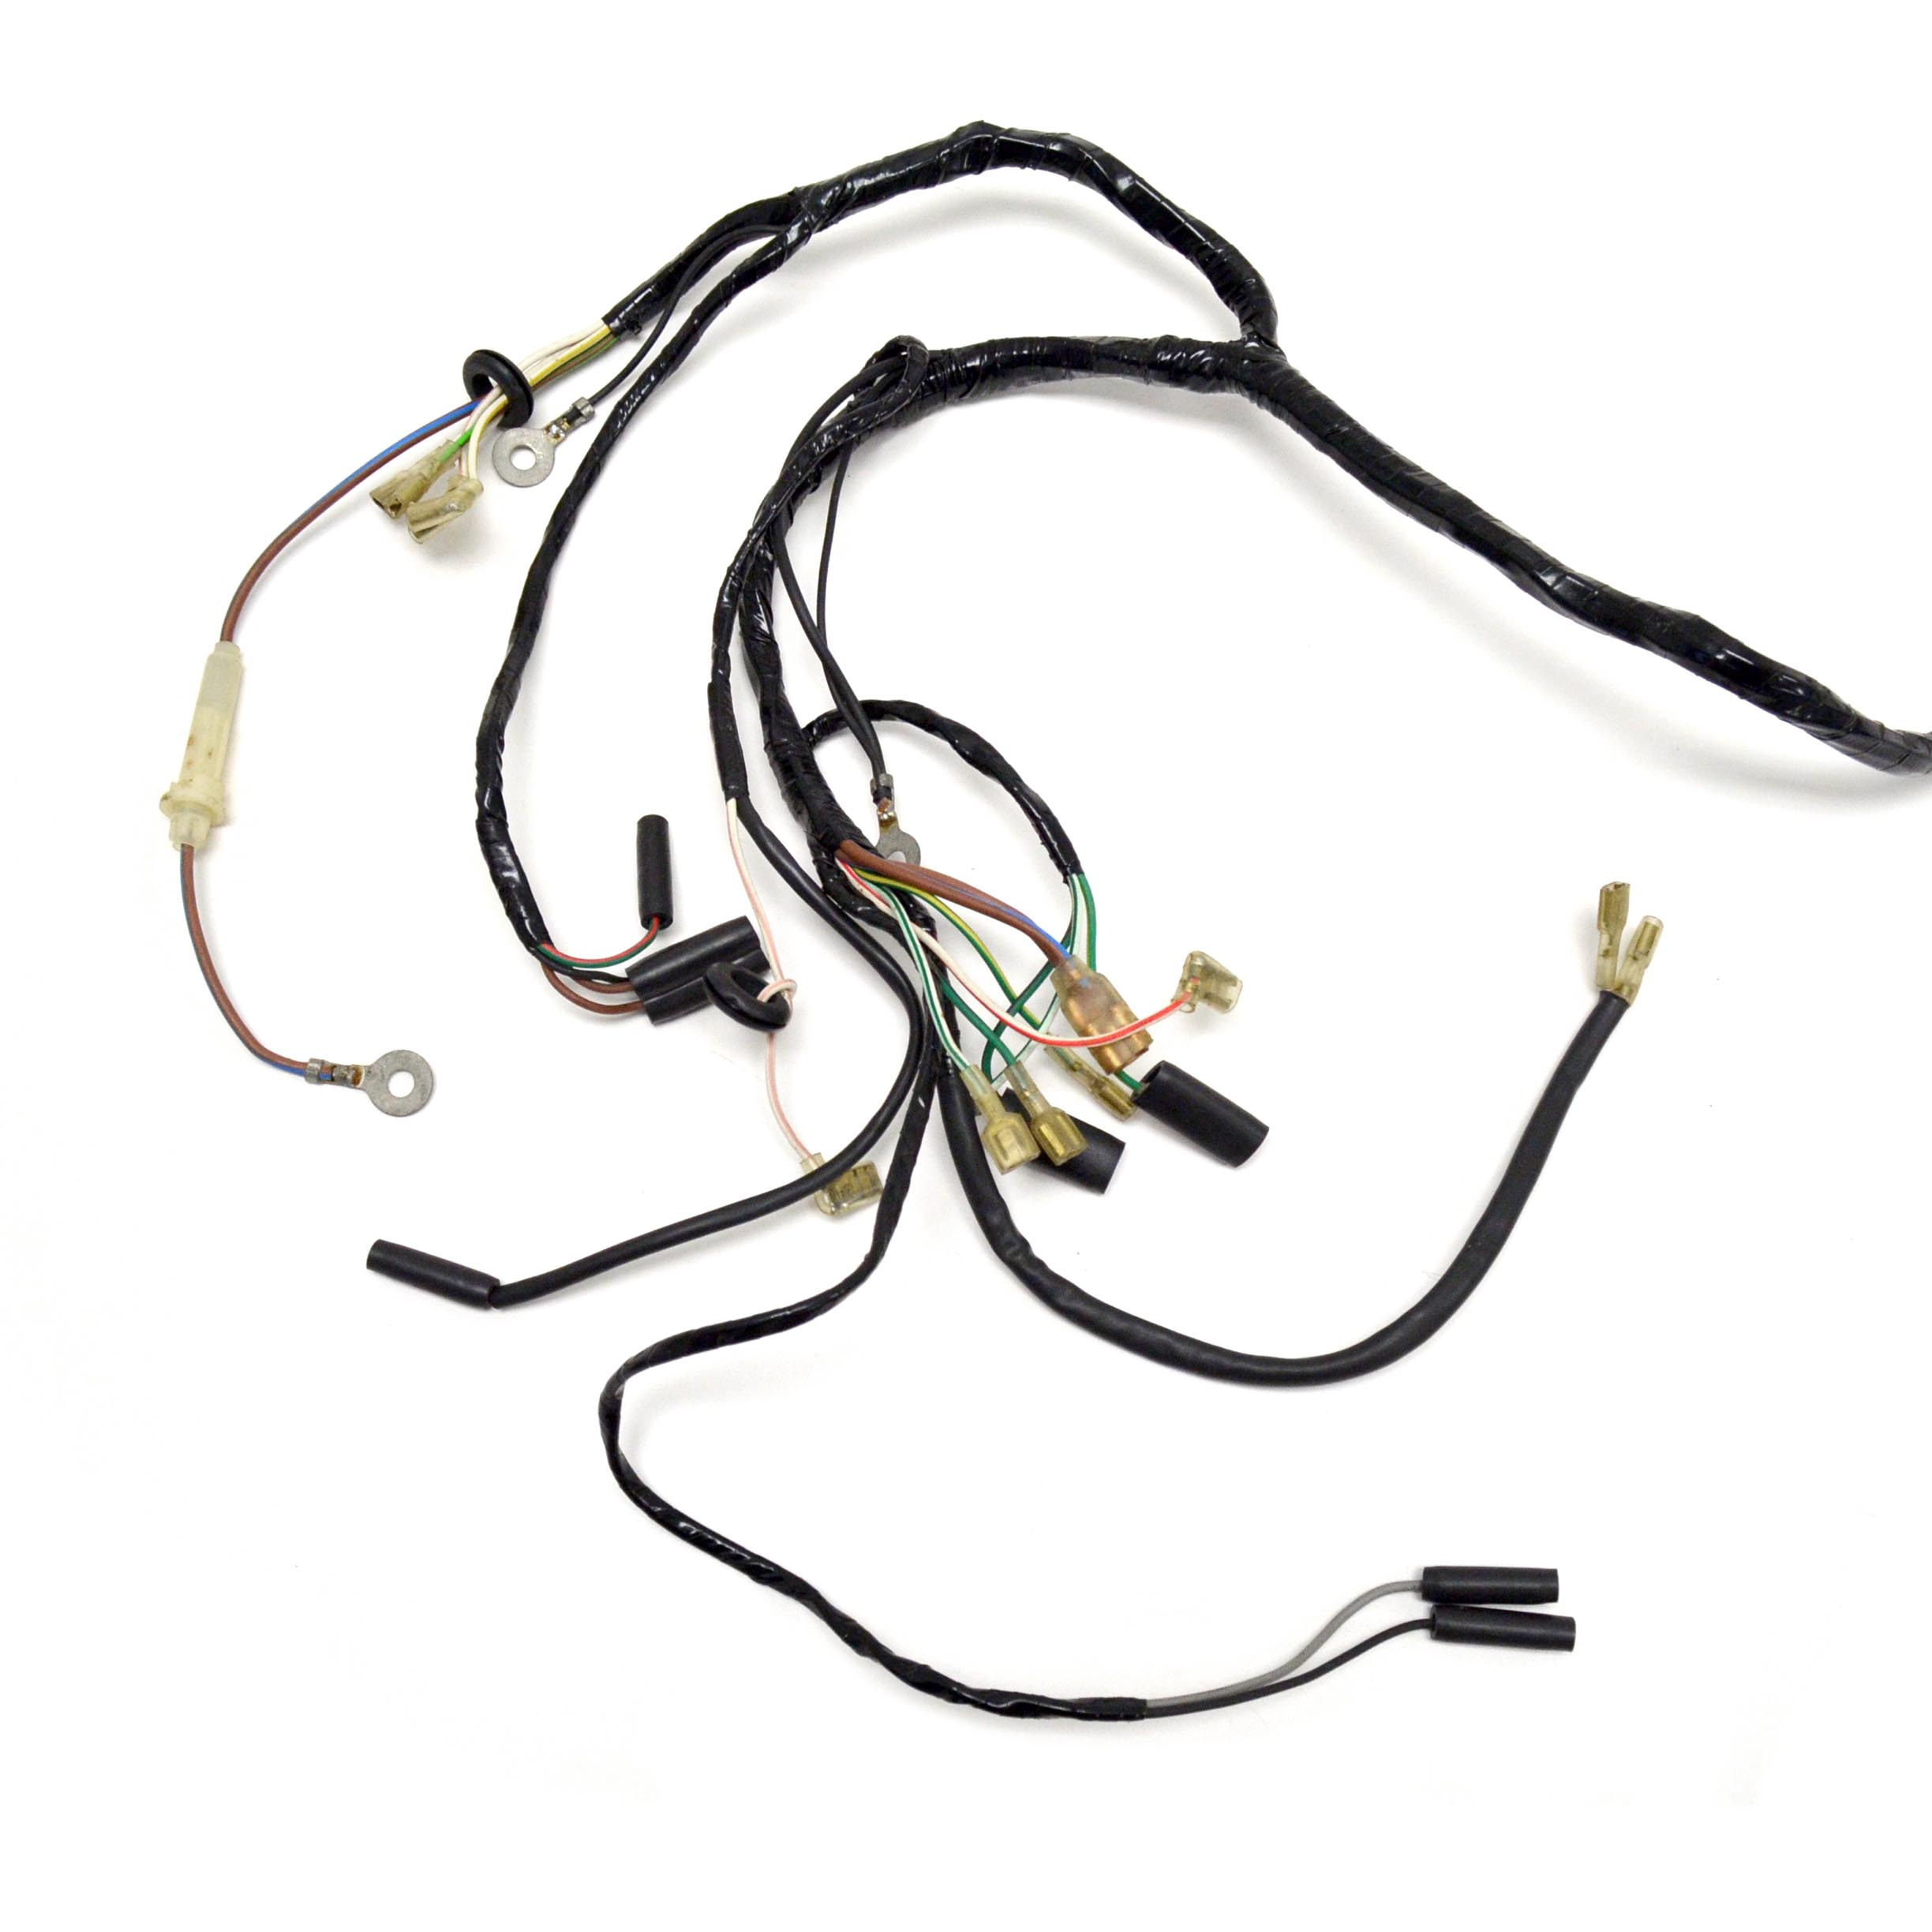 triumph 1981 82 t140 tsx factory genuine lucas wiring harness 60 original new old stock nos wiring harness made by lucas for the triumph factory